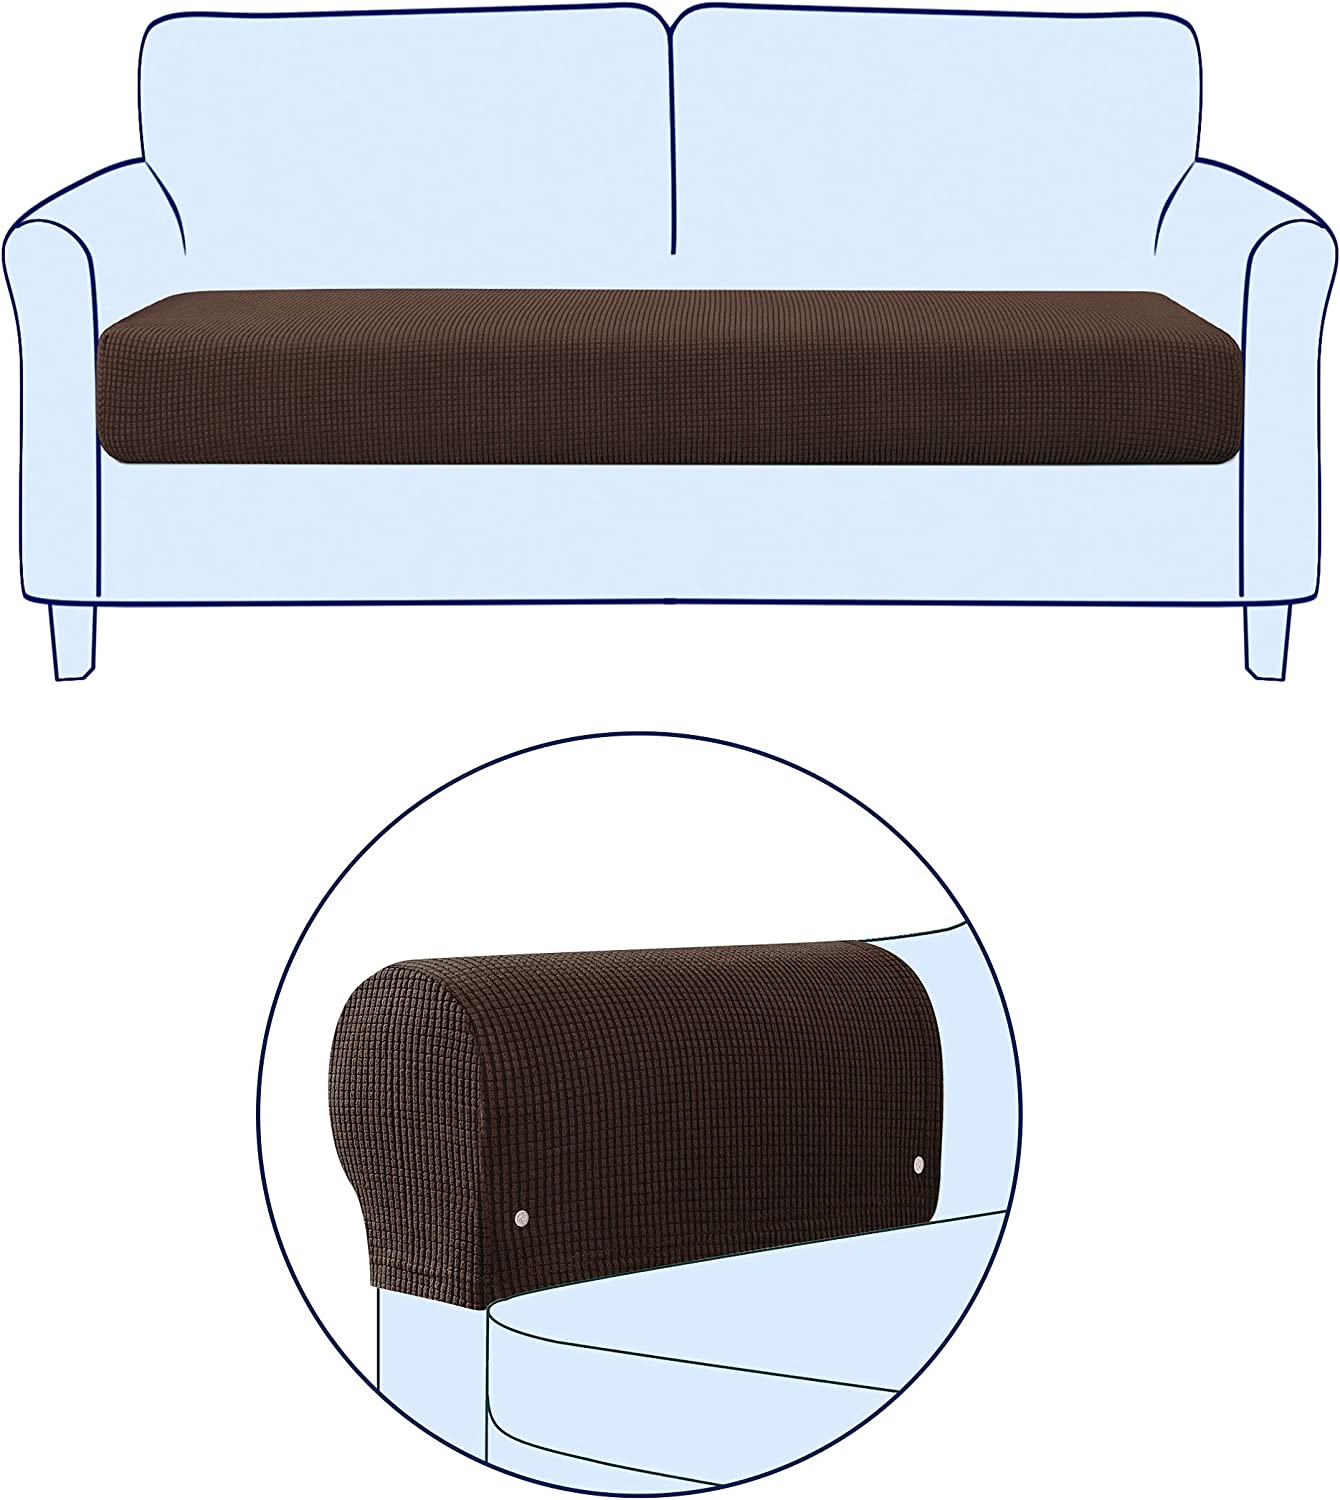 2021 Subrtex Stretch Armrest Covers Reservation Bundles Stre Couch Cushion